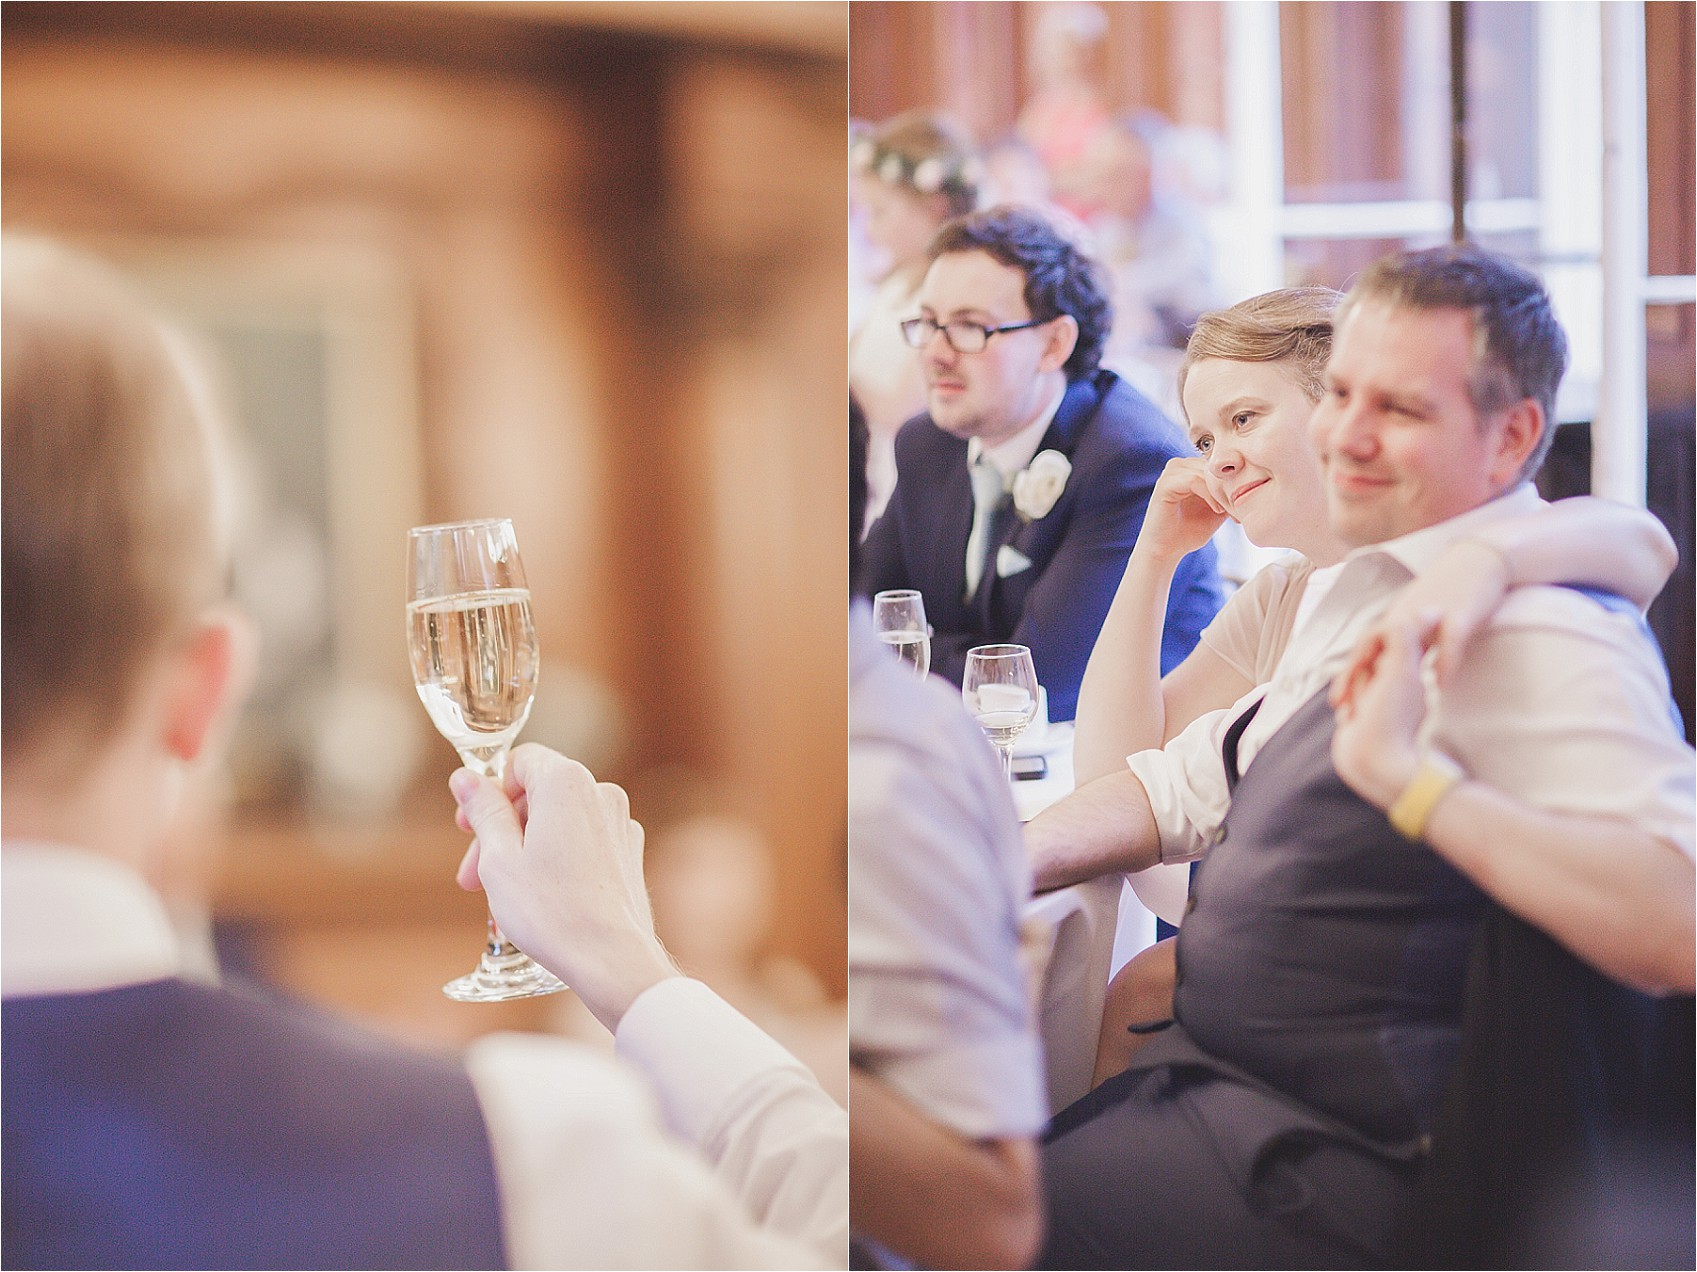 Guests toasting bride and groom